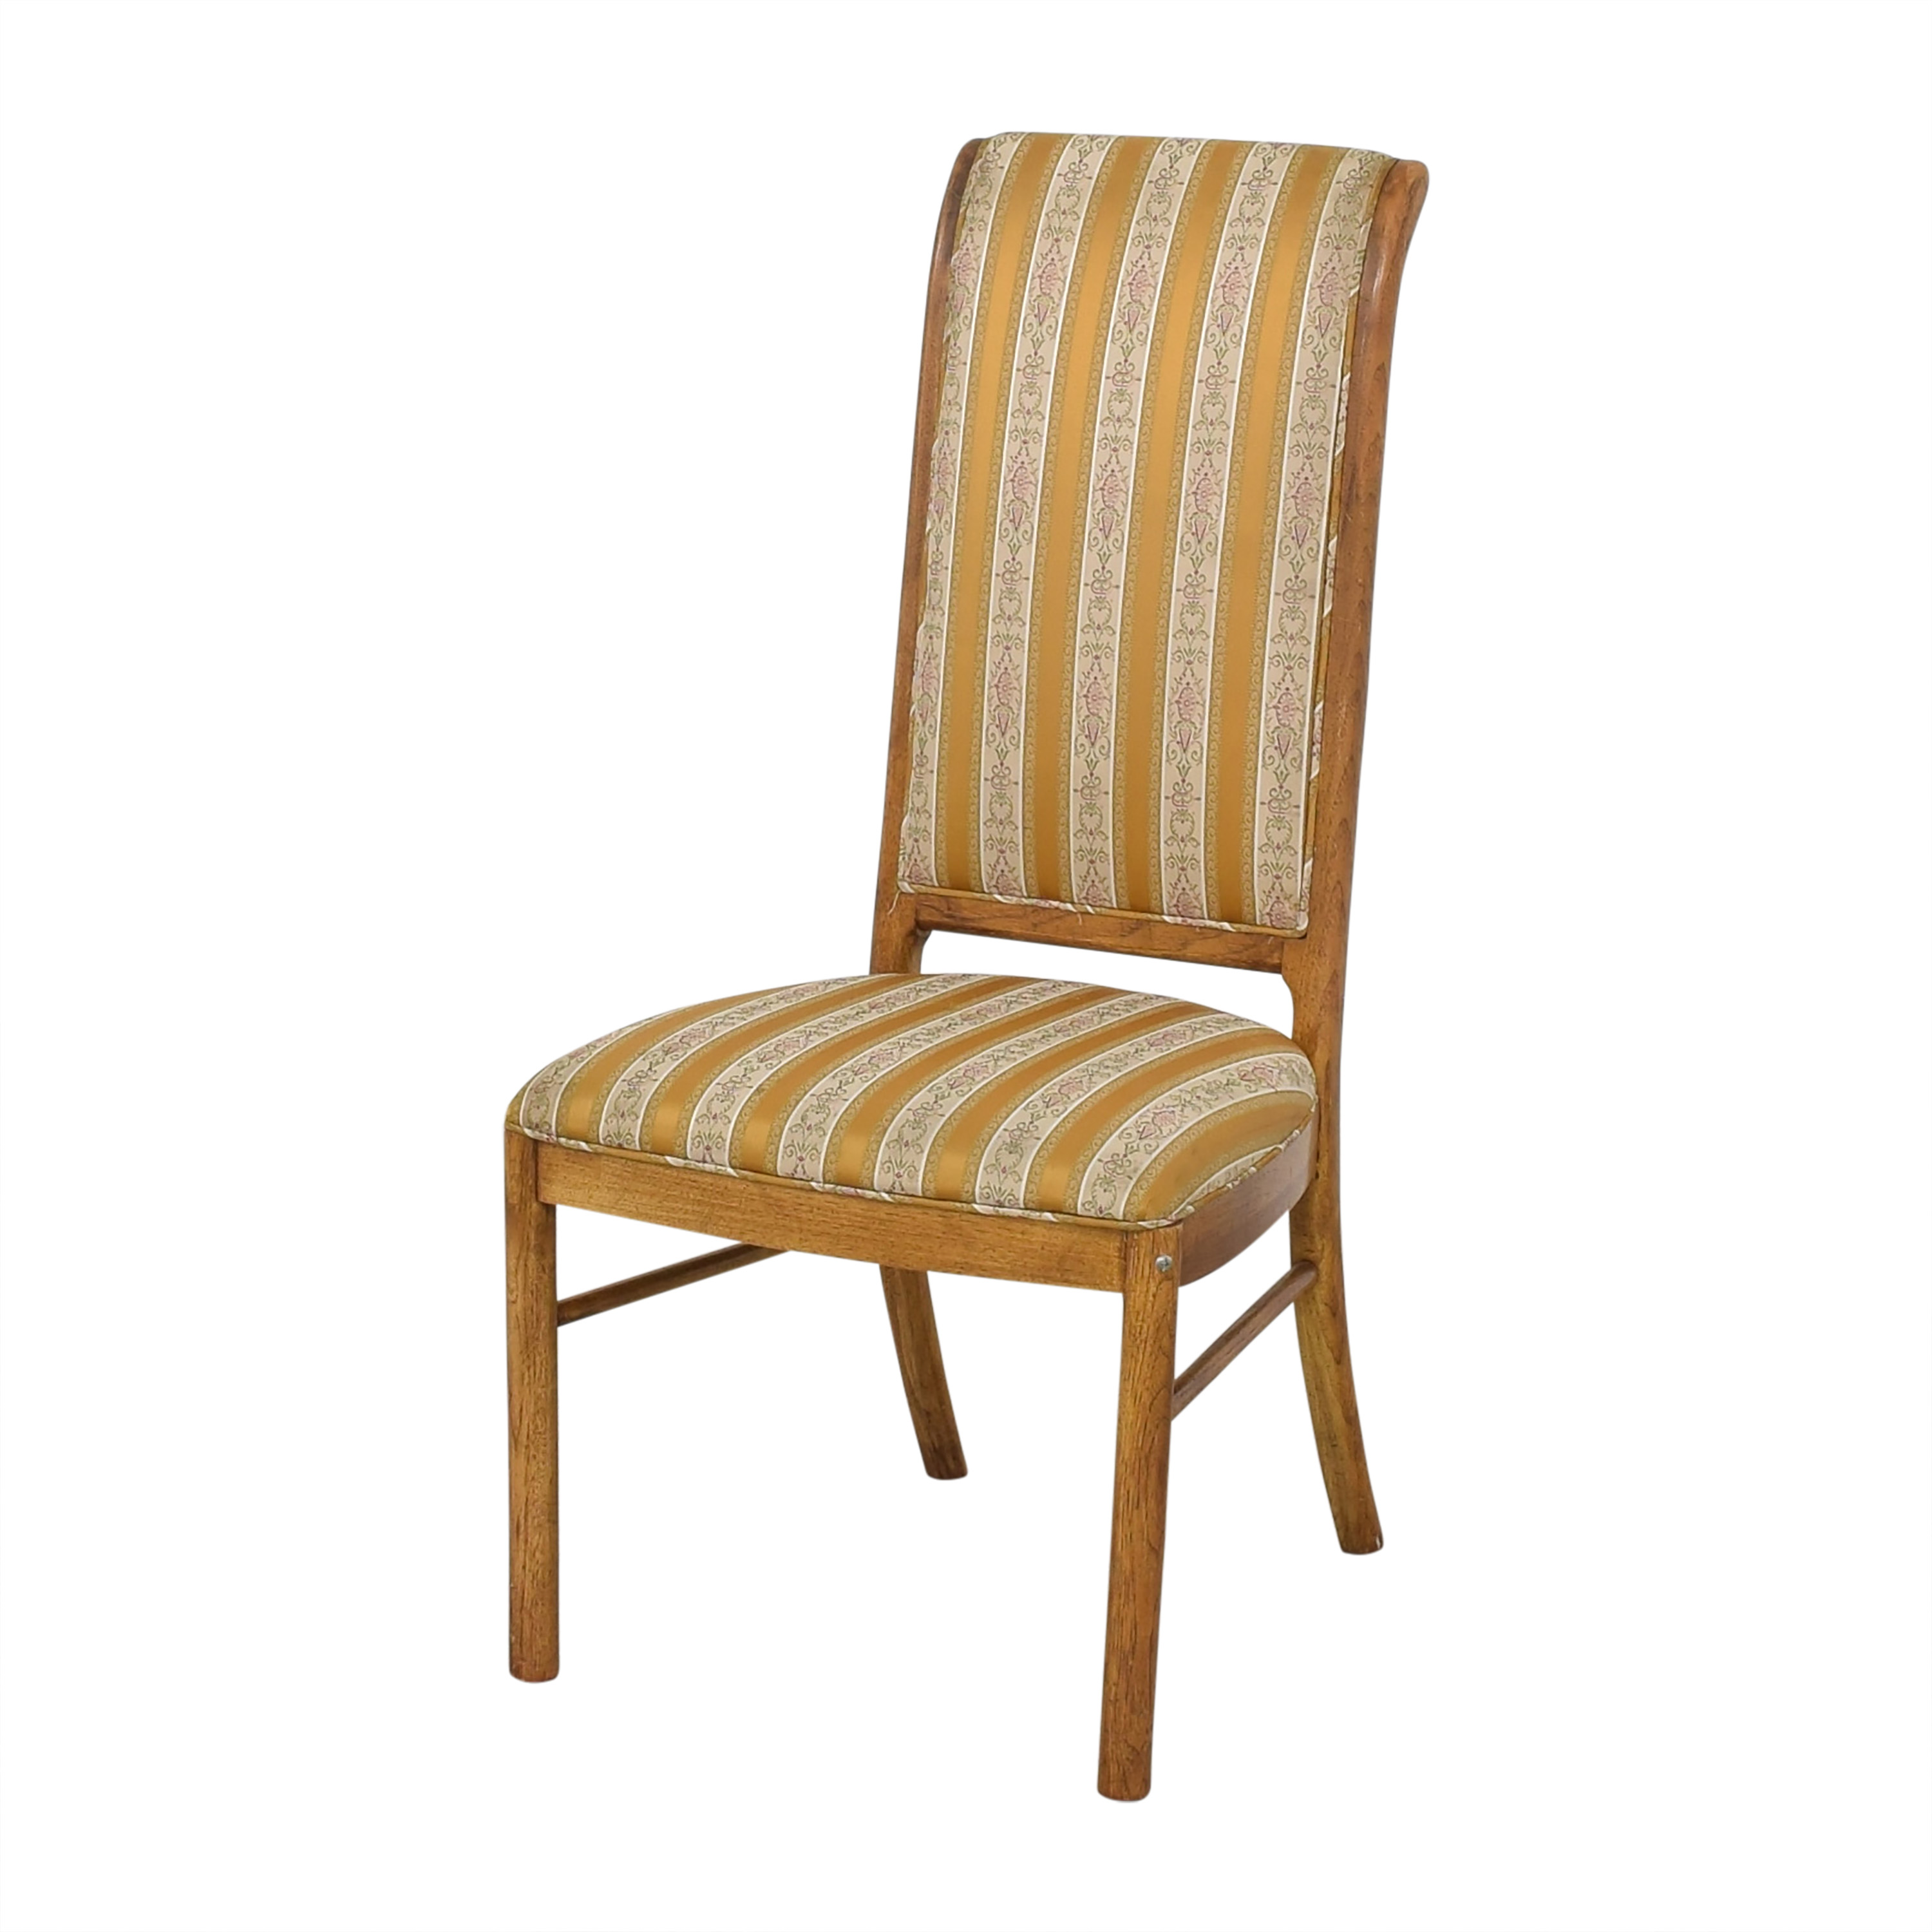 Drexel Heritage Drexel Heritage French Regency Style Dining Chairs discount